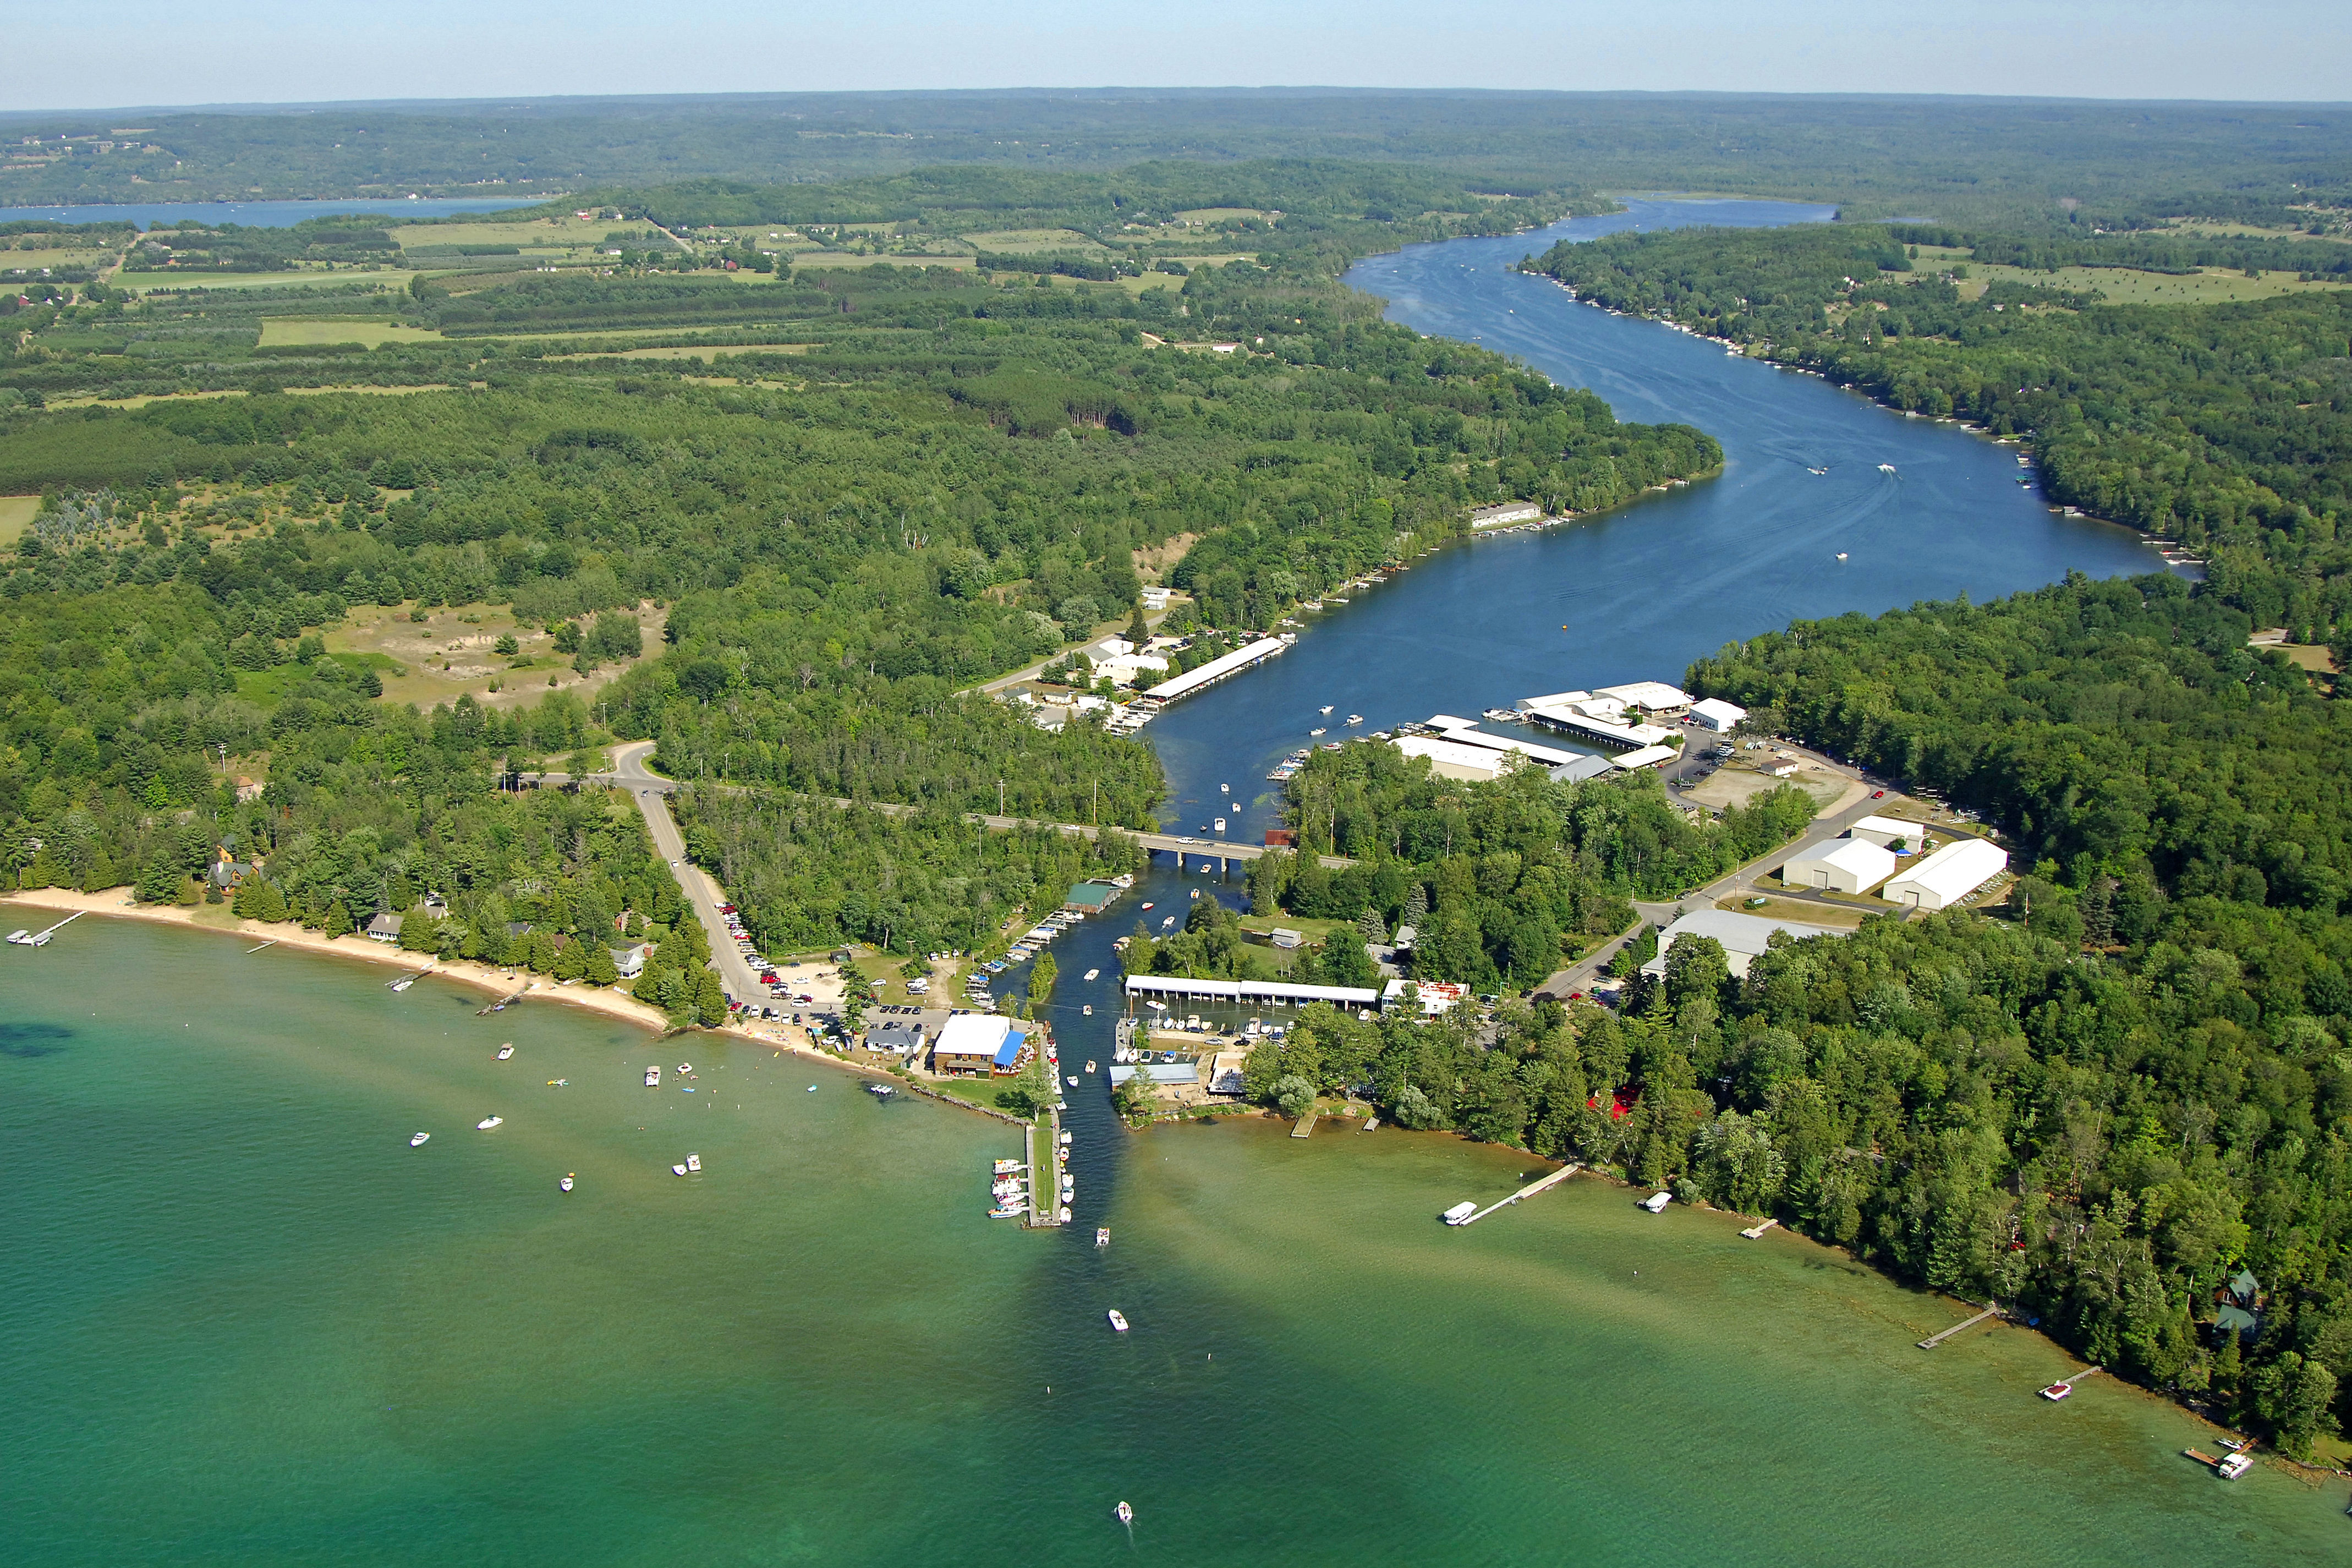 clam lake Find clam lake wisconsin campgrounds campgrounds provide information about camping, tent camping, reserveamerica, koa, rv resorts, campsites, and cabins.